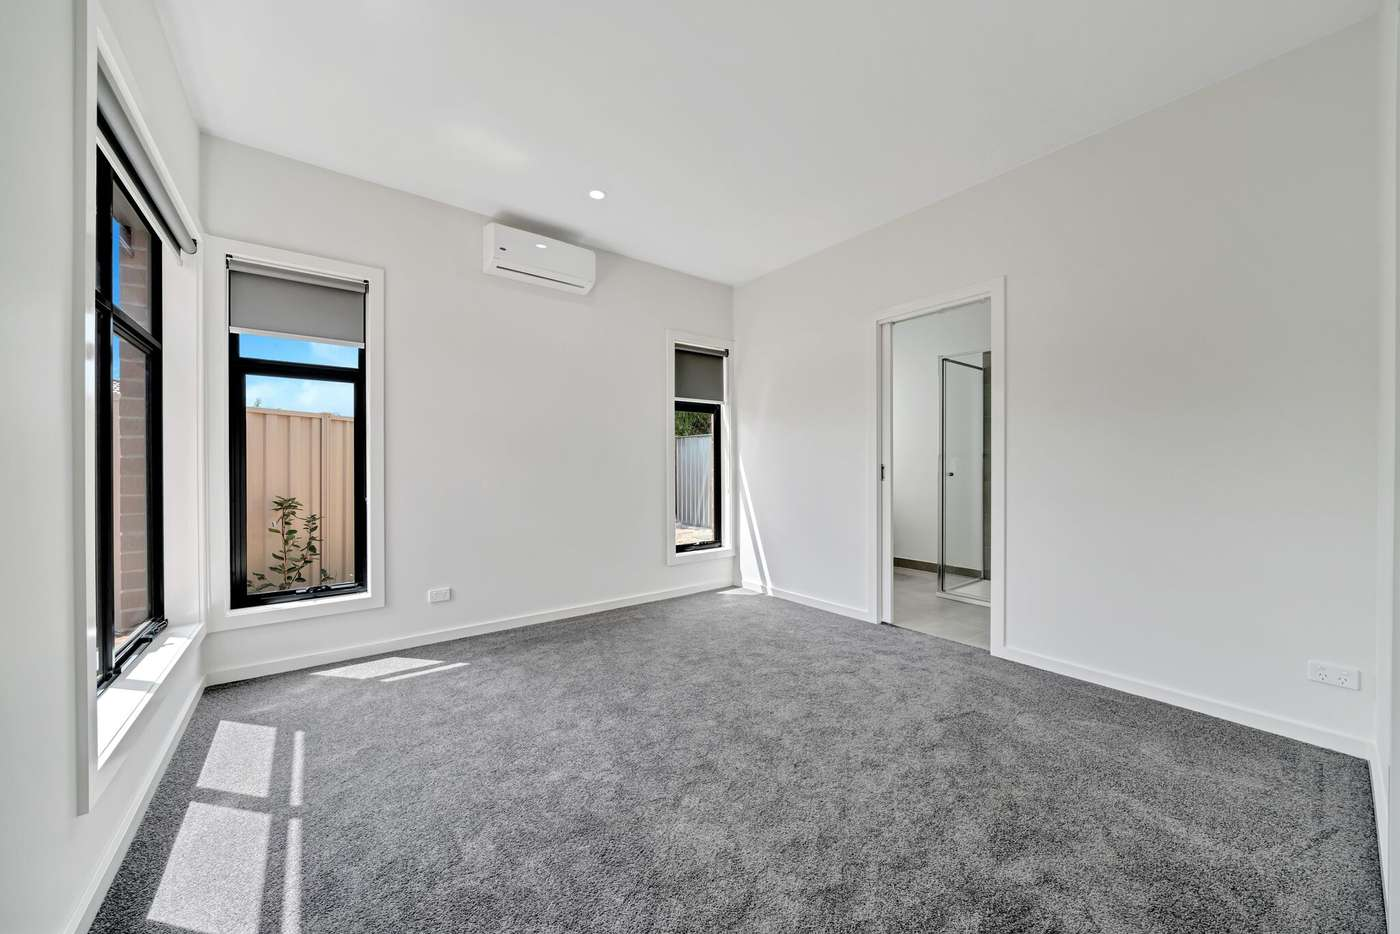 Sixth view of Homely unit listing, 32D Elder Road, Hoppers Crossing VIC 3029